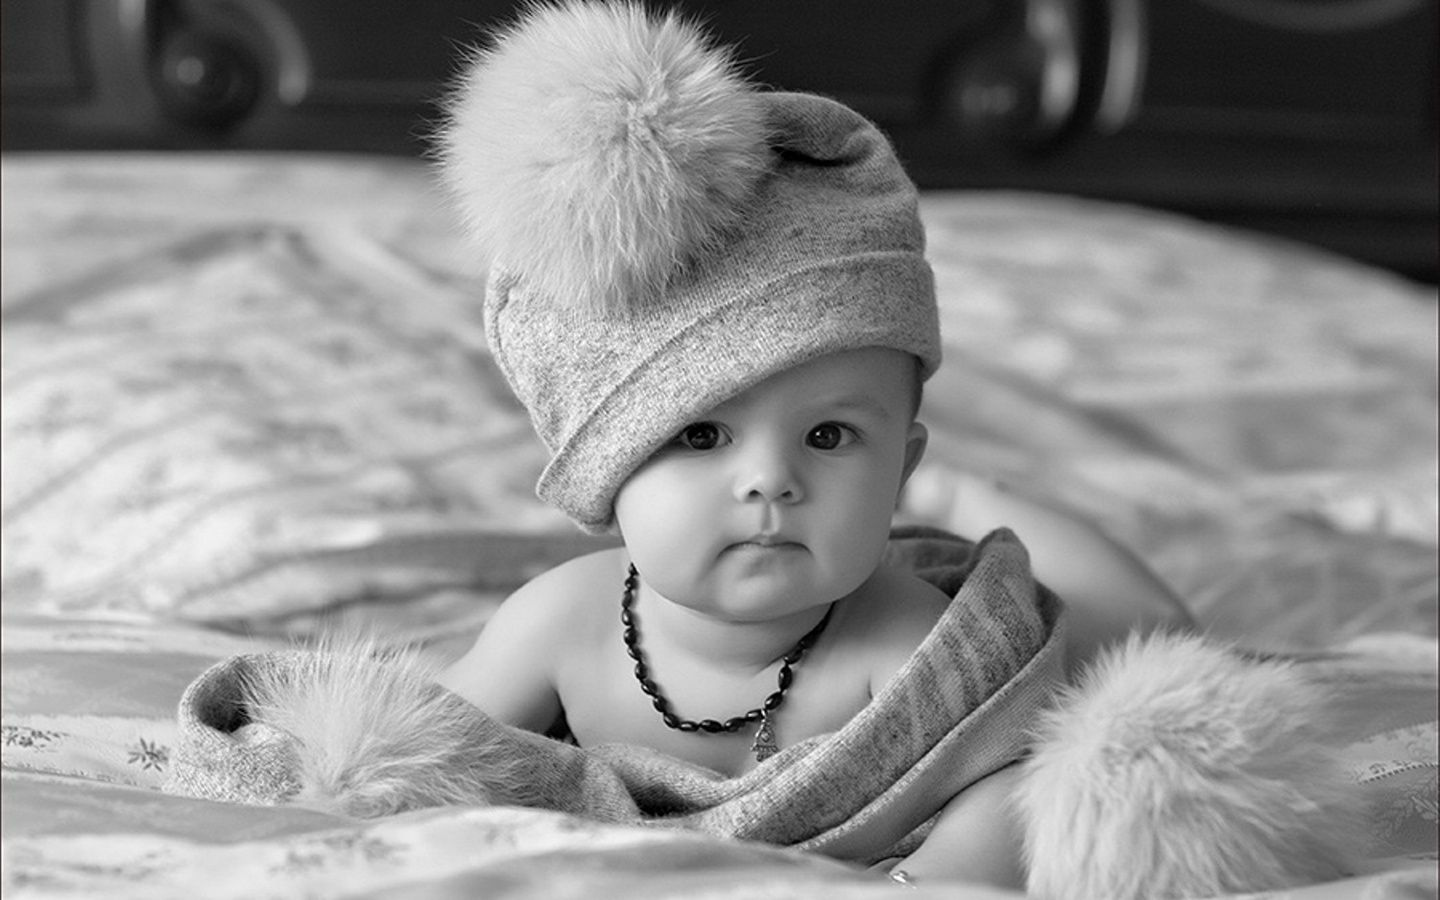 Black And White Photos Black And White Baby With Hat 1440 X 900 Download Close Black And White Baby Cute Baby Wallpaper Cute Baby Pictures